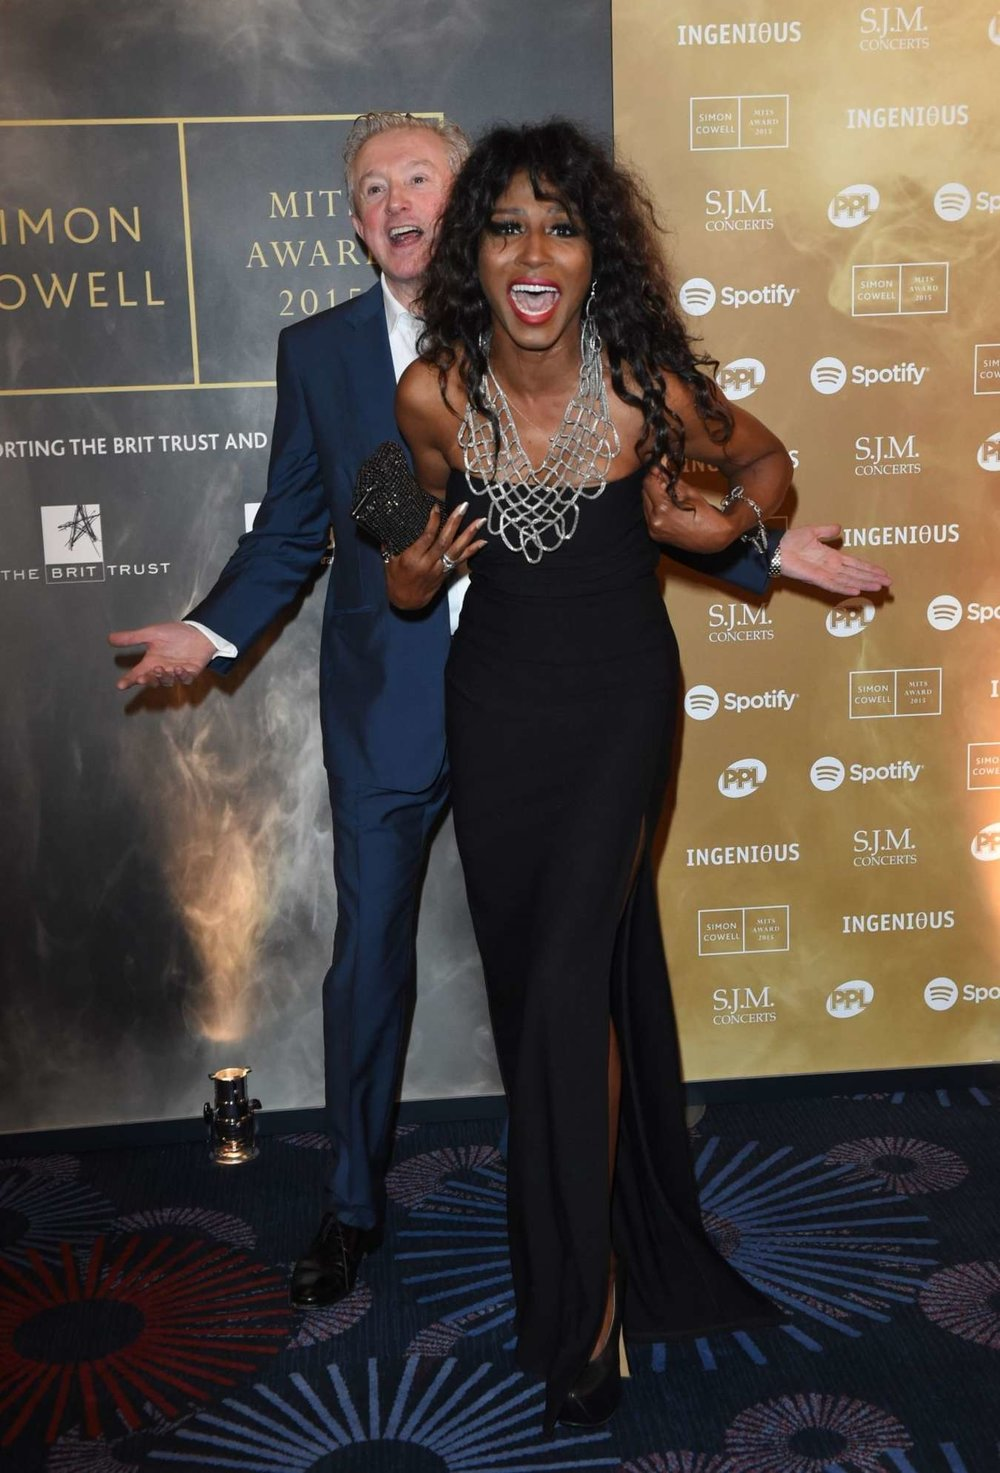 sinitta-music-industry-trust-awards-in-london-1350x1988.jpg